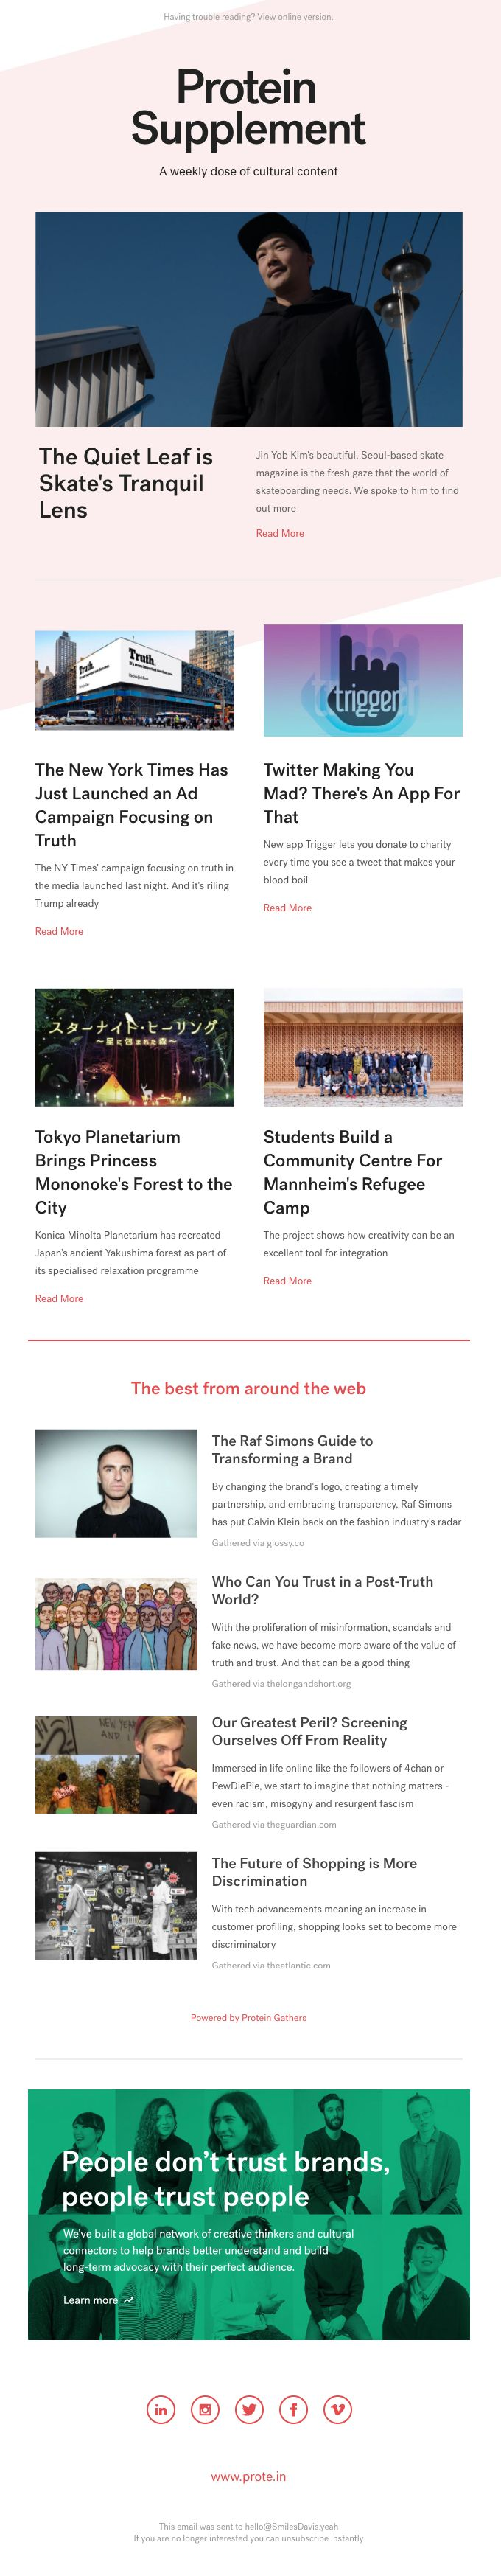 Protein sent this email with the subject line: #652 | Discover Seoul's Skateboarding Scene with The Quiet Leaf, a Tokyo Forest Planetarium and The NY Times' Truth Campaign - Read about this email and find more email digest emails at ReallyGoodEmails.com #emaildigest #news #newsletter